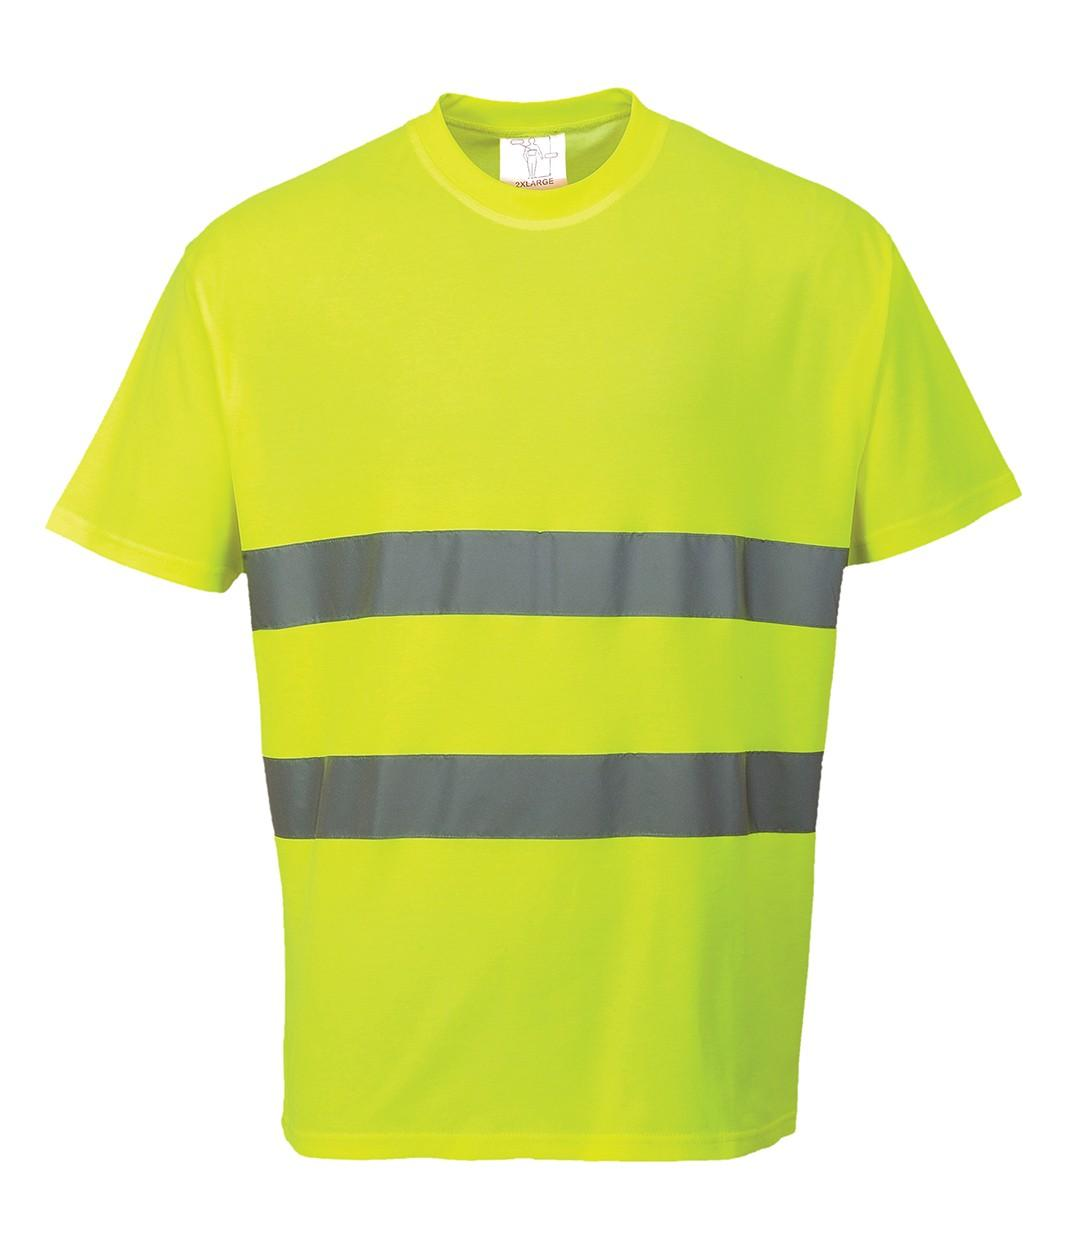 E And E Workwear Cotton Comfort T Shirt Hi Vis